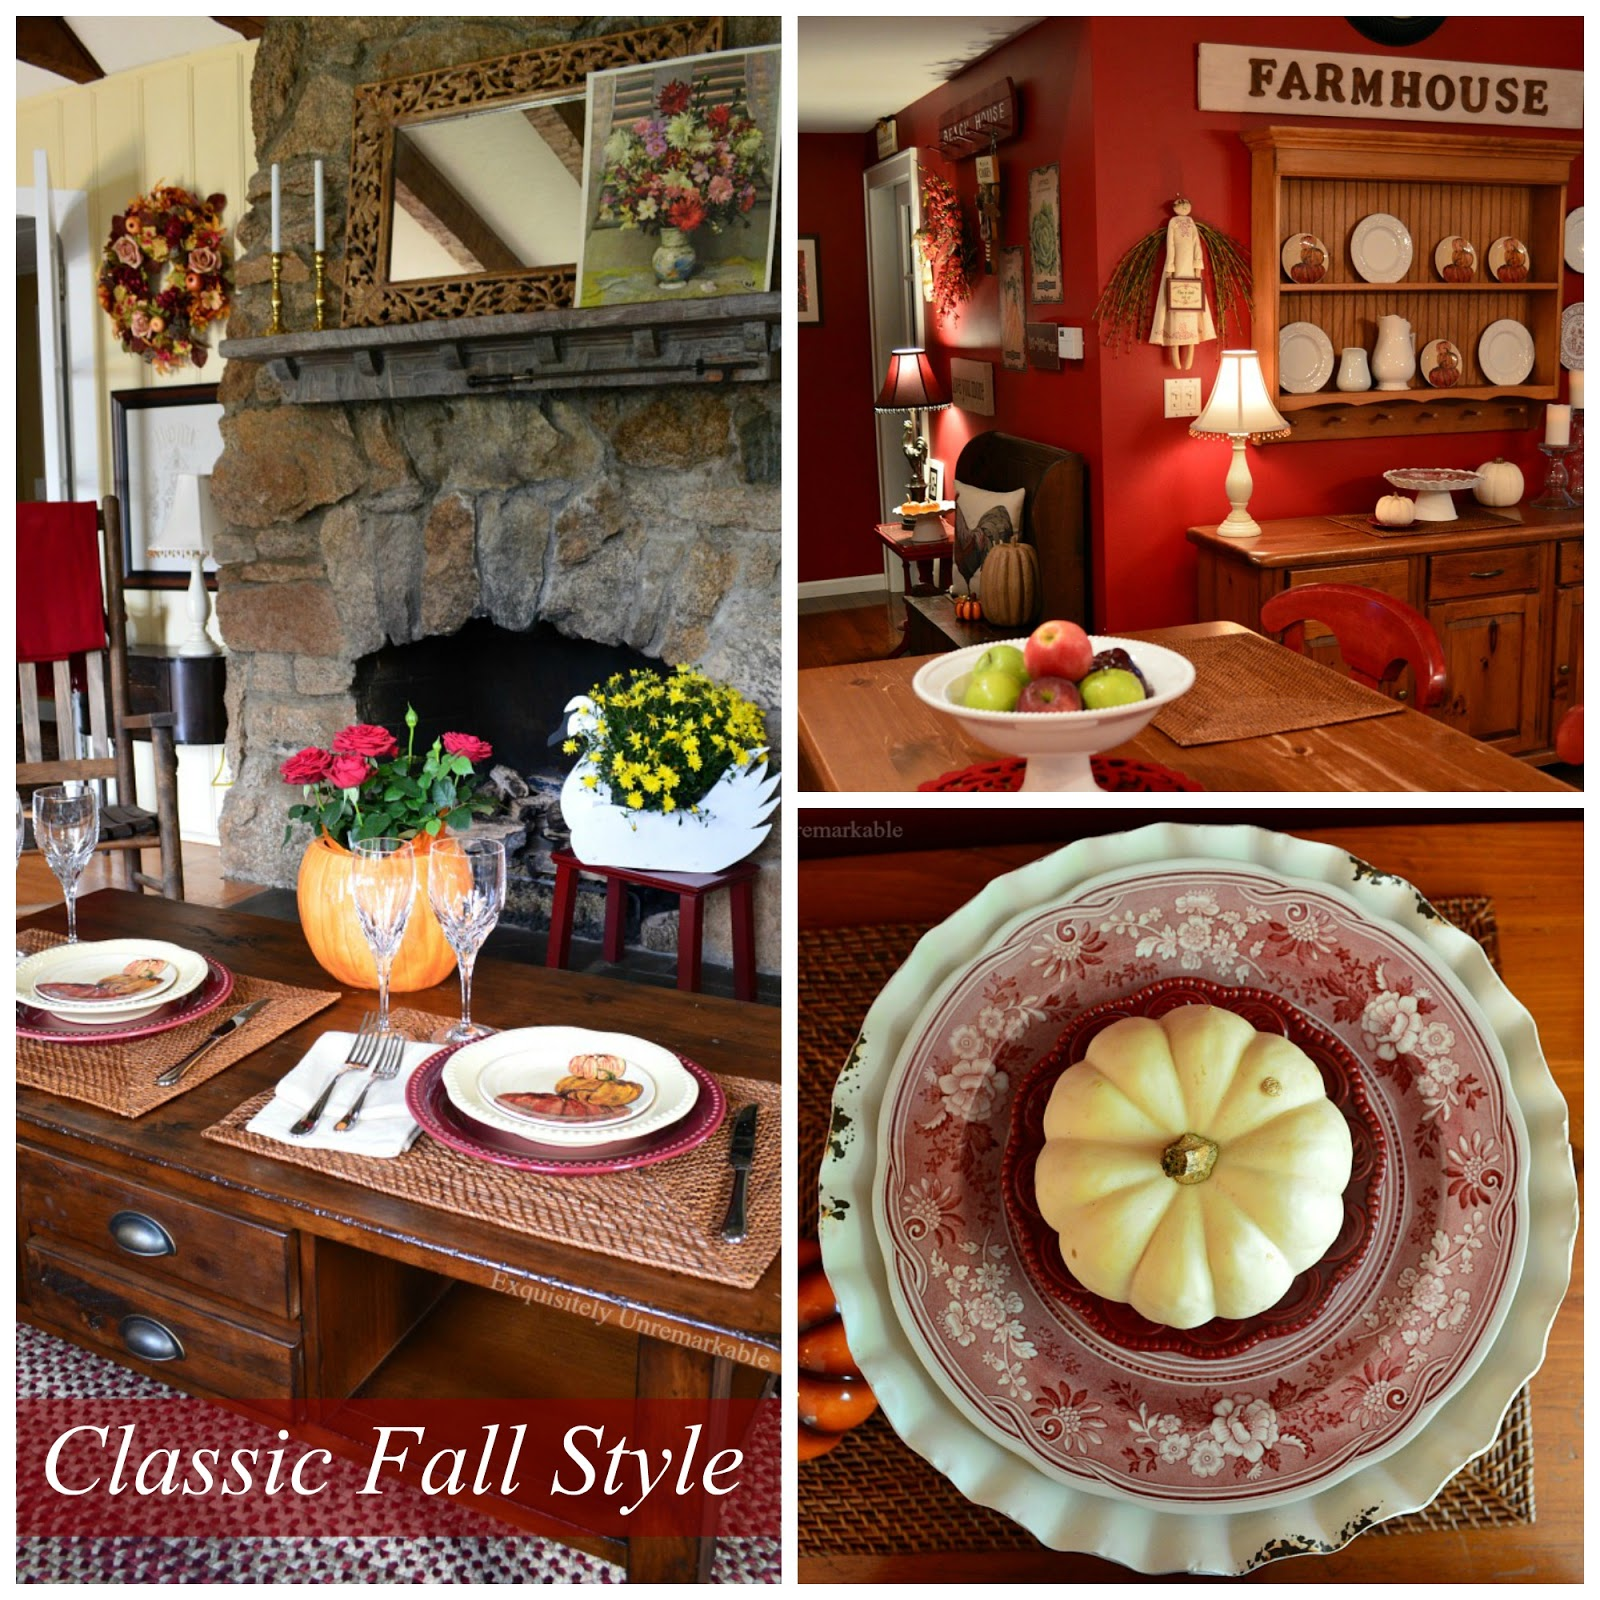 Classic Fall Home Decor